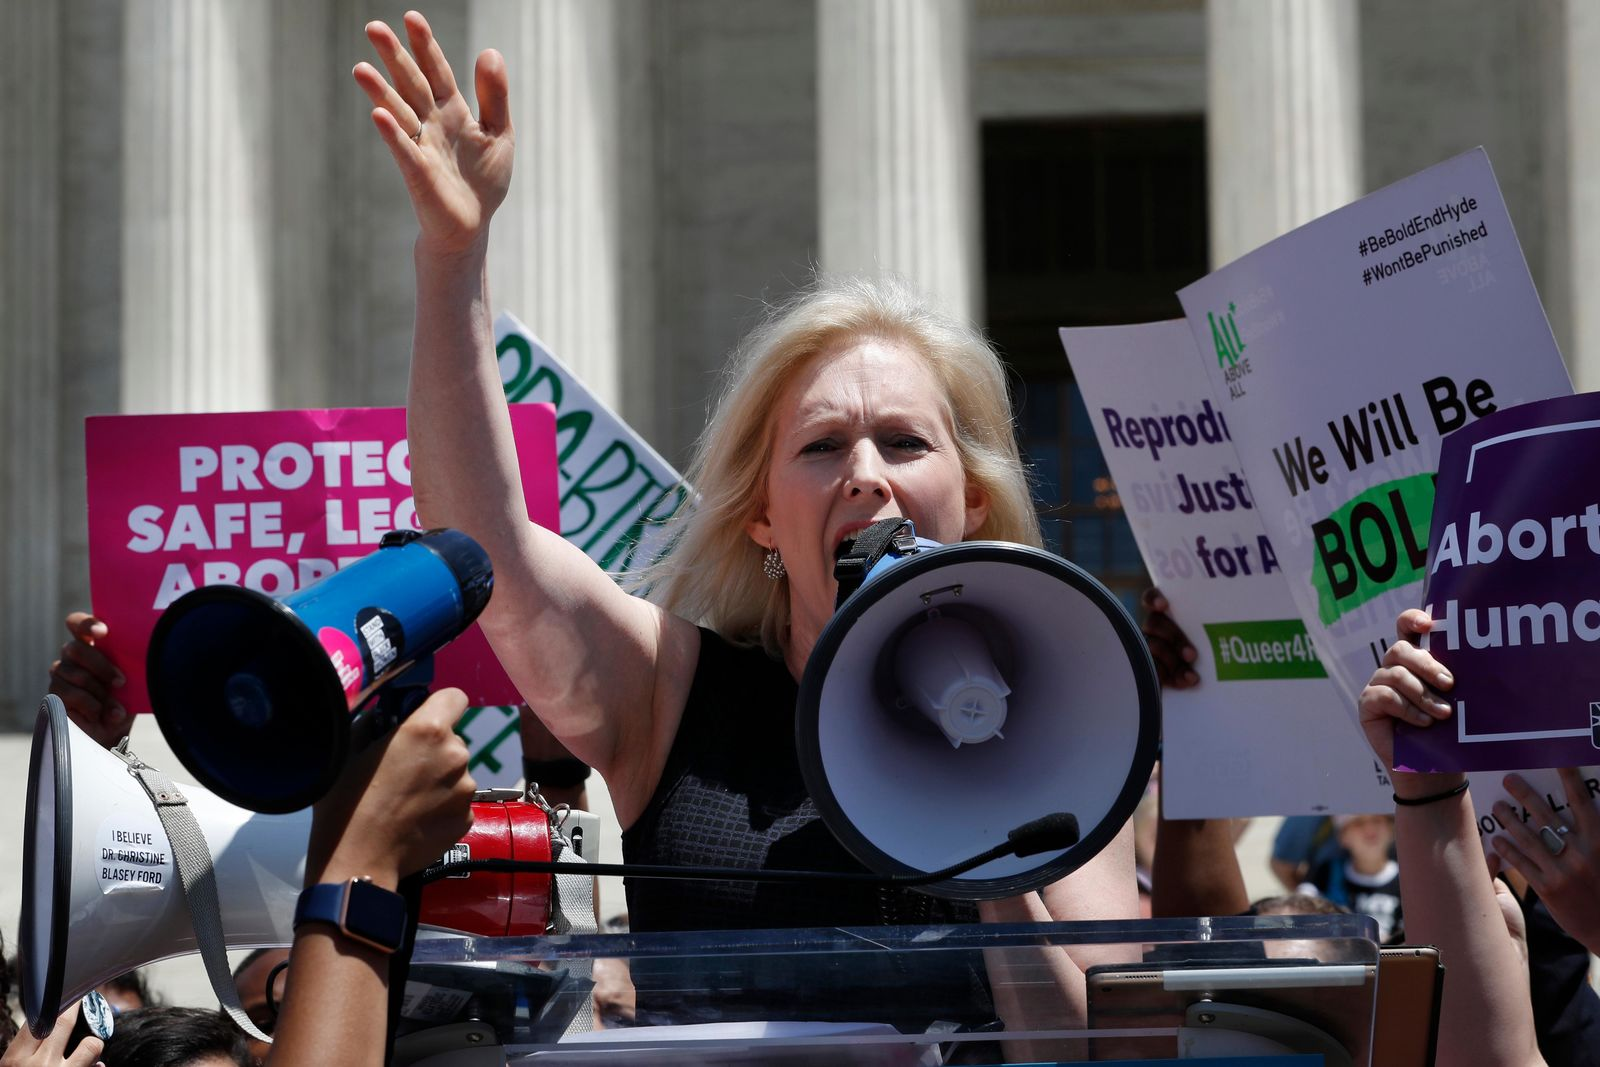 Democratic presidential candidate Sen. Kirsten Gillibrand, D-N.Y., speaks during a protest against abortion bans, Tuesday, May 21, 2019, outside the Supreme Court in Washington. A coalition of dozens of groups held a National Day of Action to Stop the Bans, with other events planned throughout the week. (AP Photo/Jacquelyn Martin)